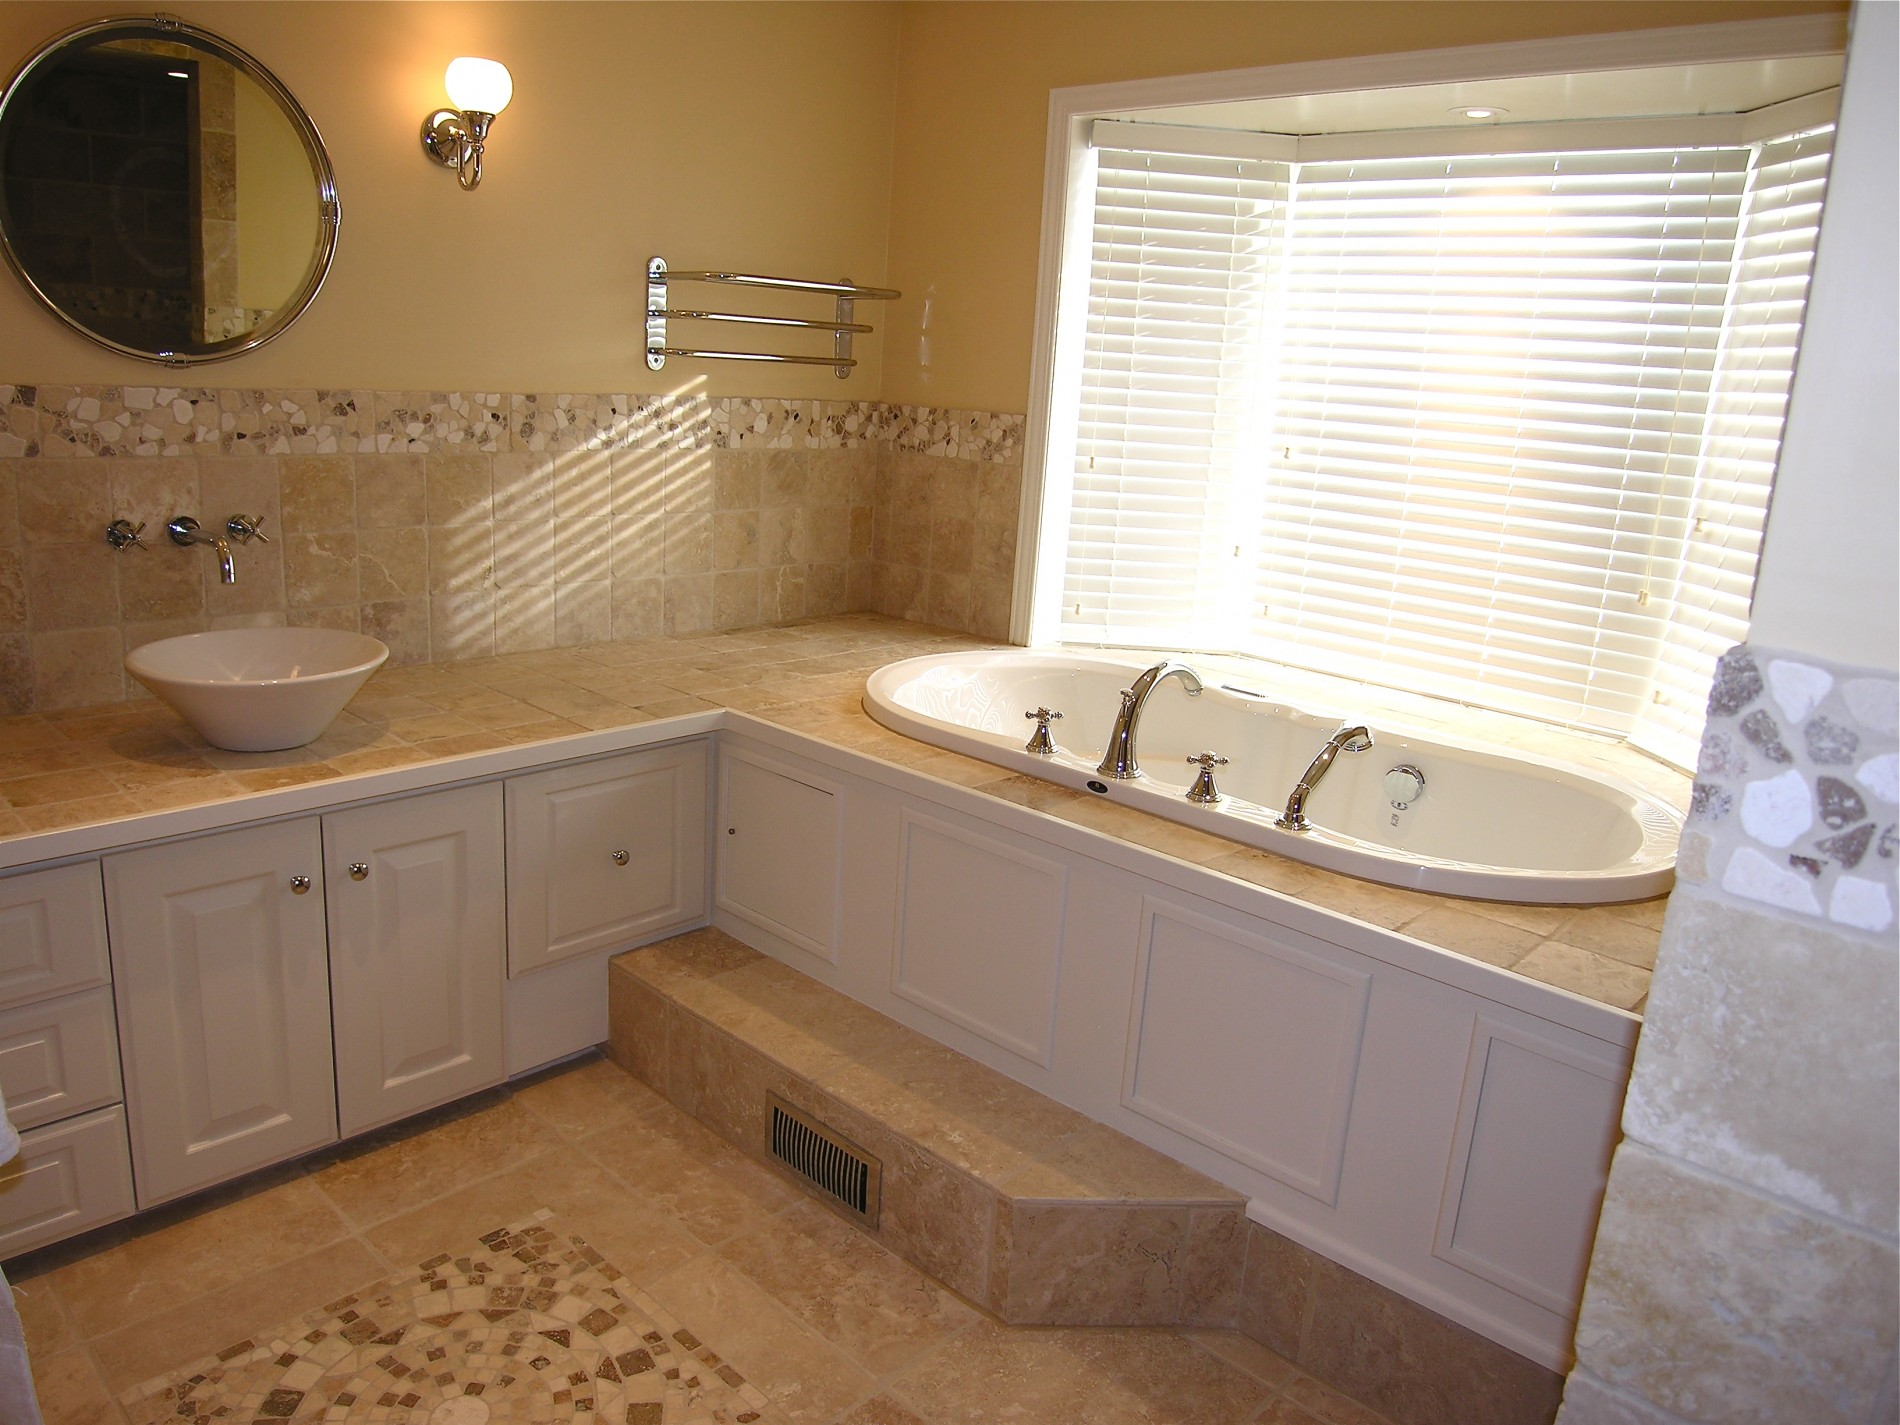 King City Ensuite Spa Bathroom - Featured Image